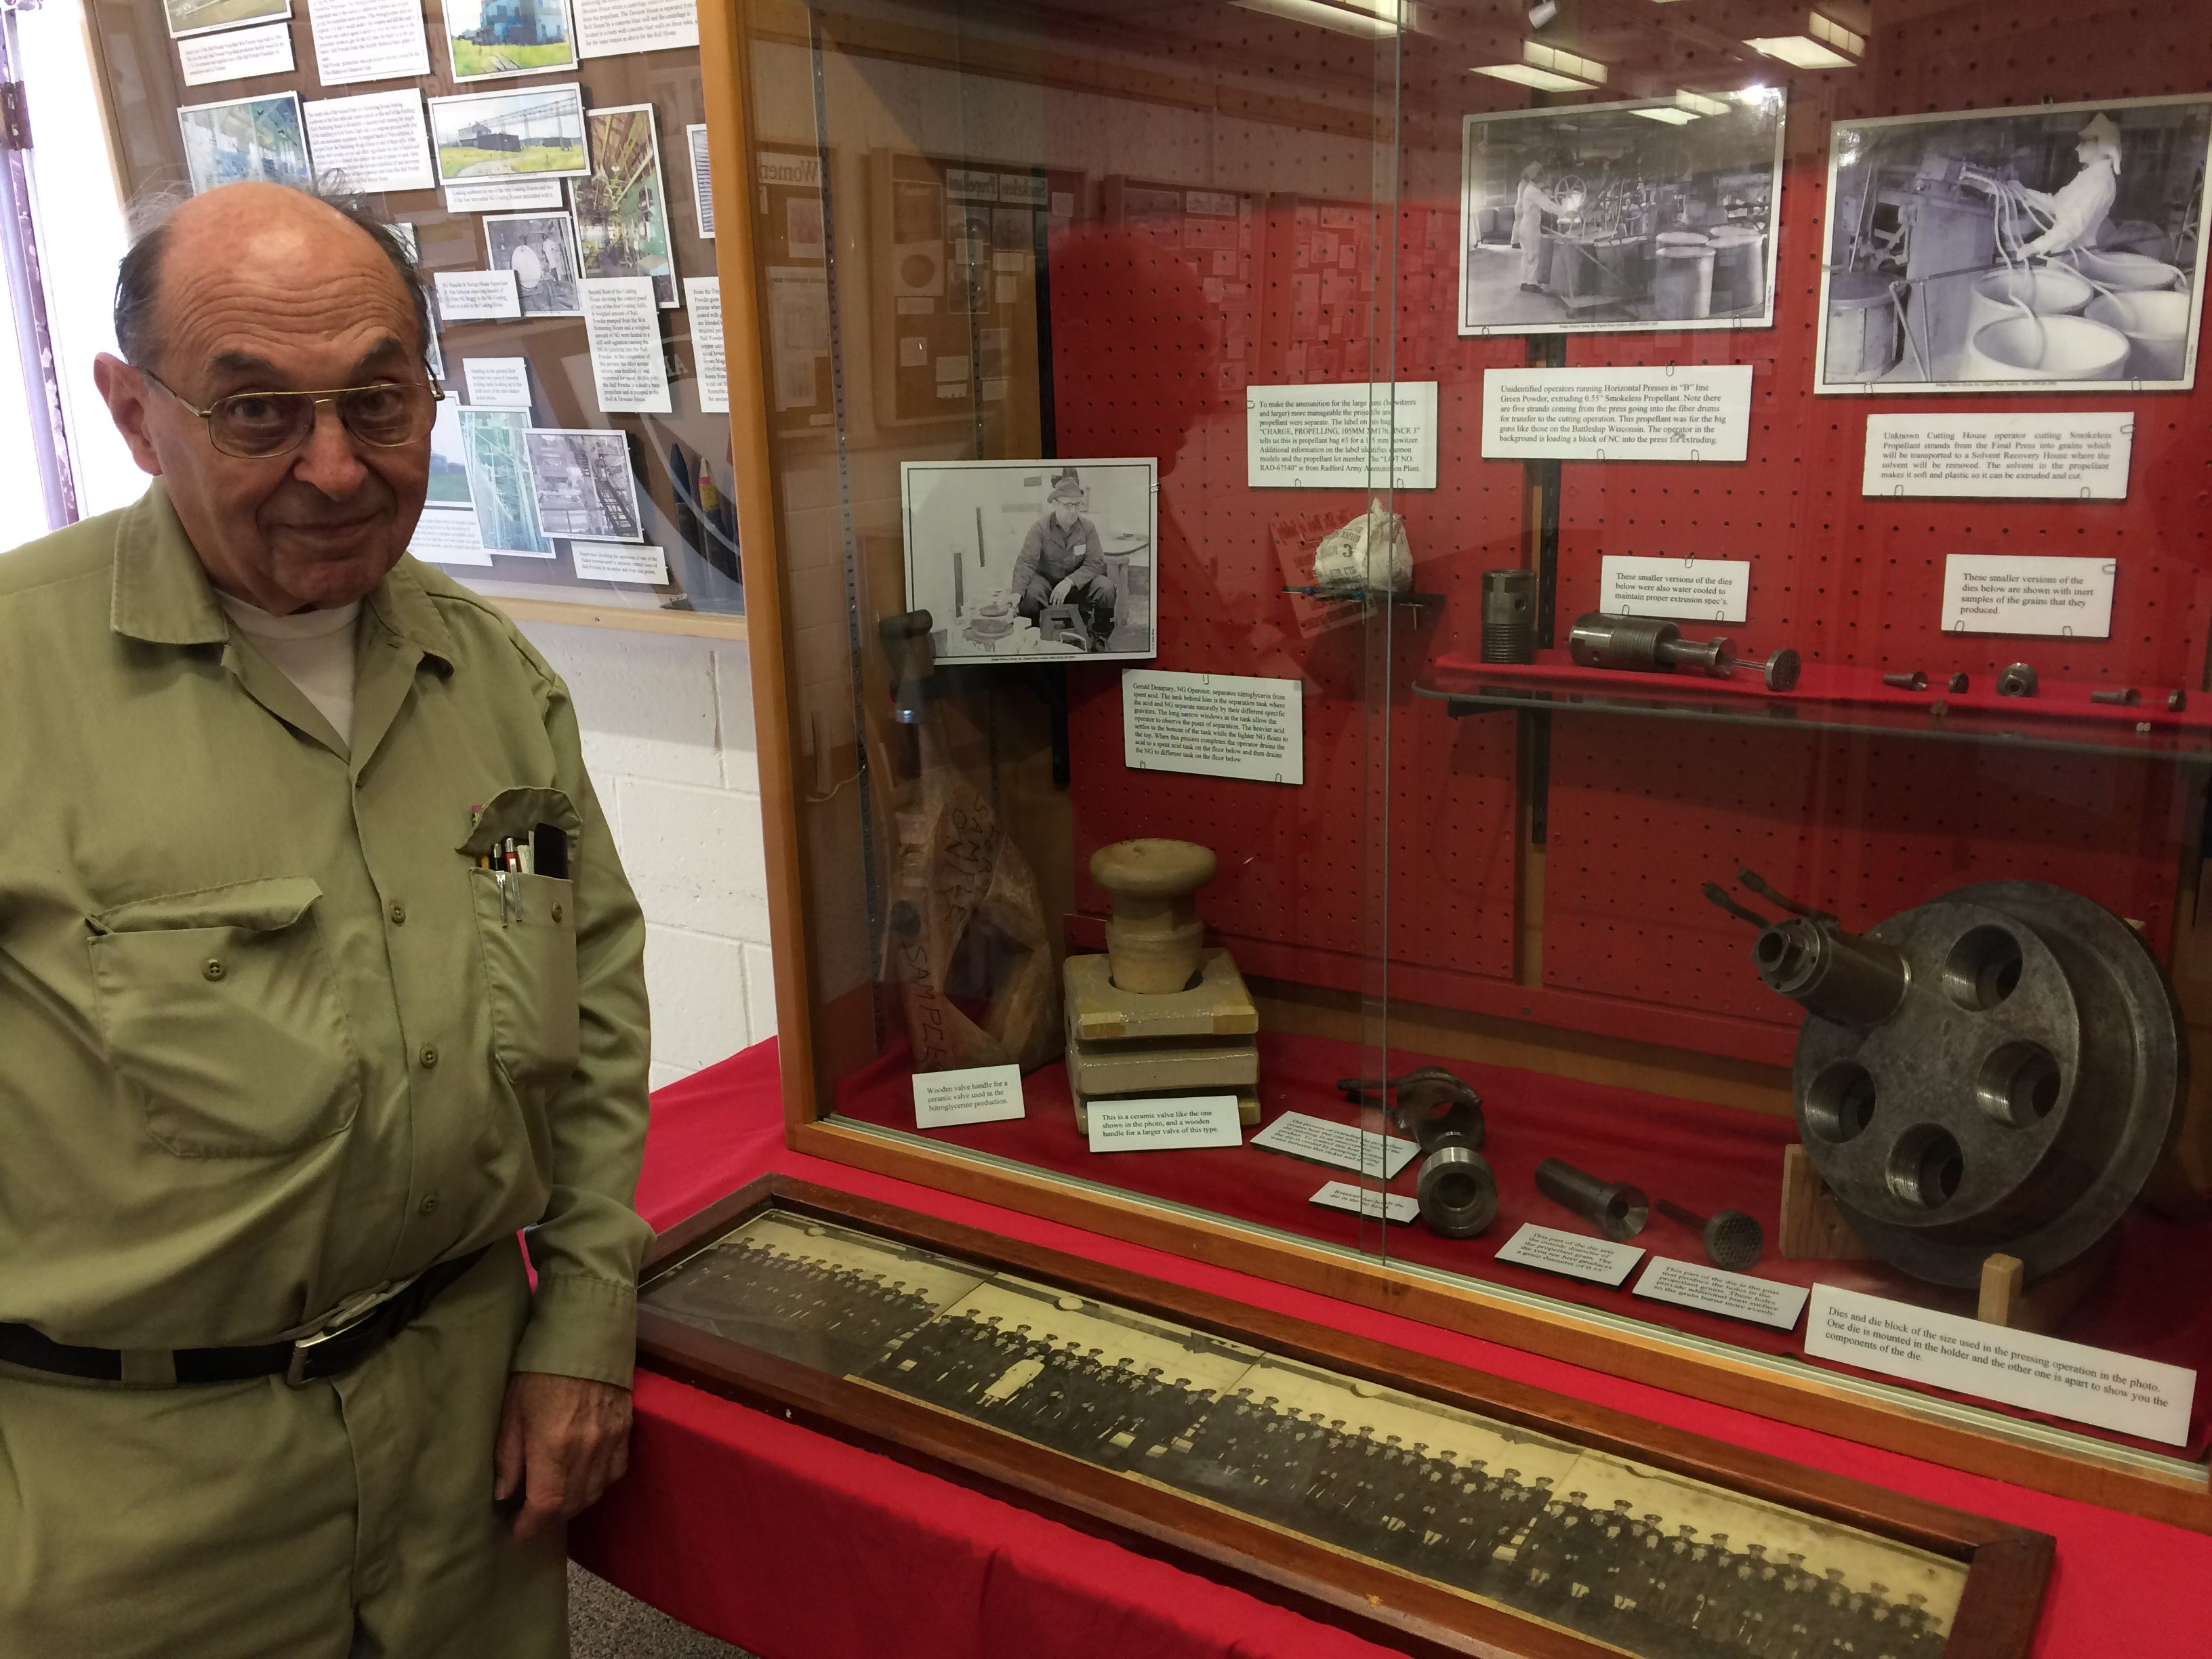 wisconsin was home to the largest munitions plant in the world badger army ammunition a museum is reviving its story